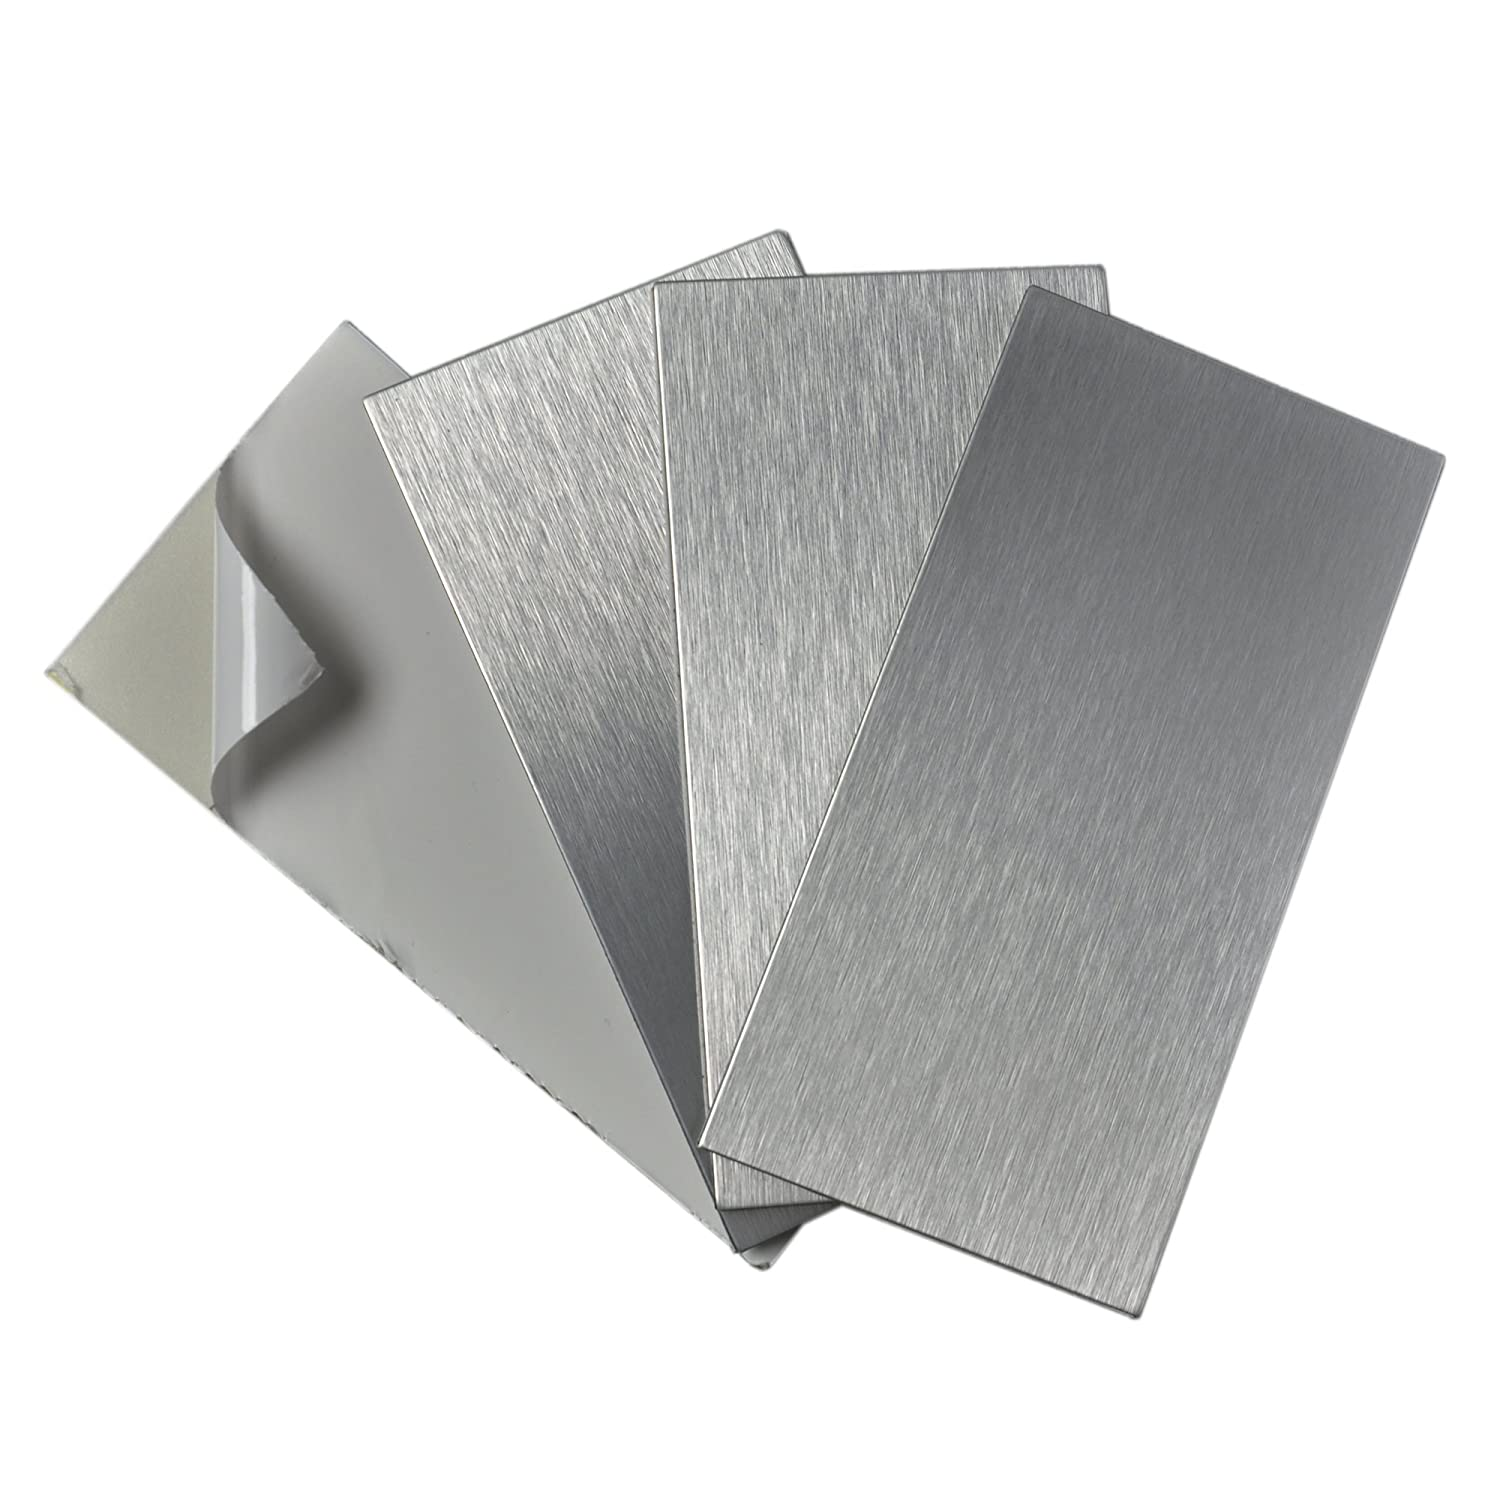 Art3d 4-Pieces Peel and Stick Stainless Steel Backsplash Tiles, 3' x 6' Brushed Metal 3 x 6 Brushed Metal A16021P4